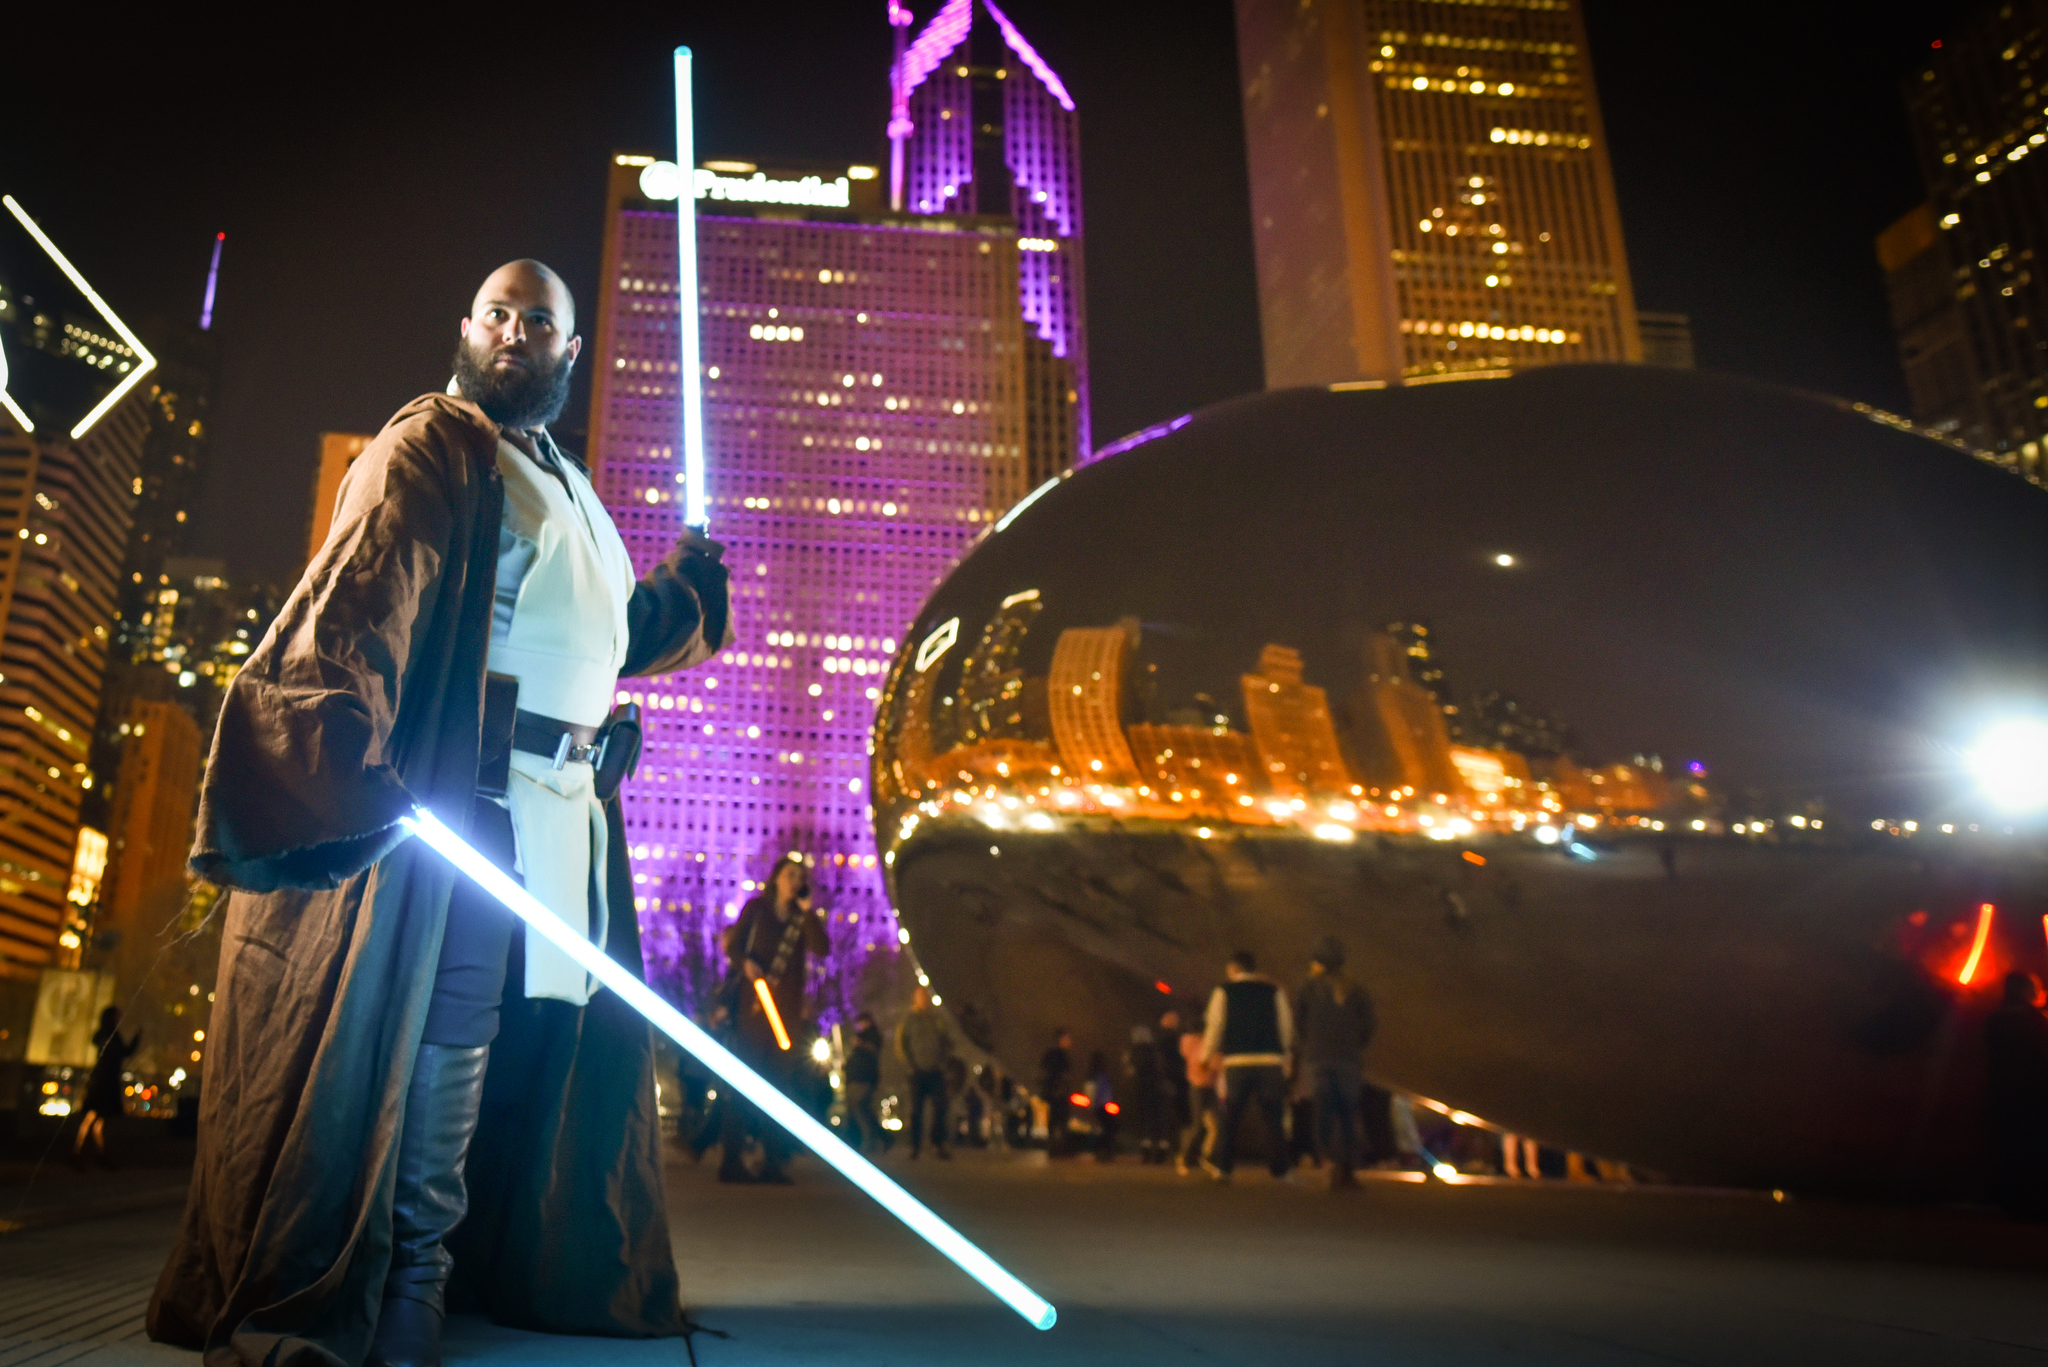 2019.04.14 - Star Wars Celebration Chicago 288870.JPG